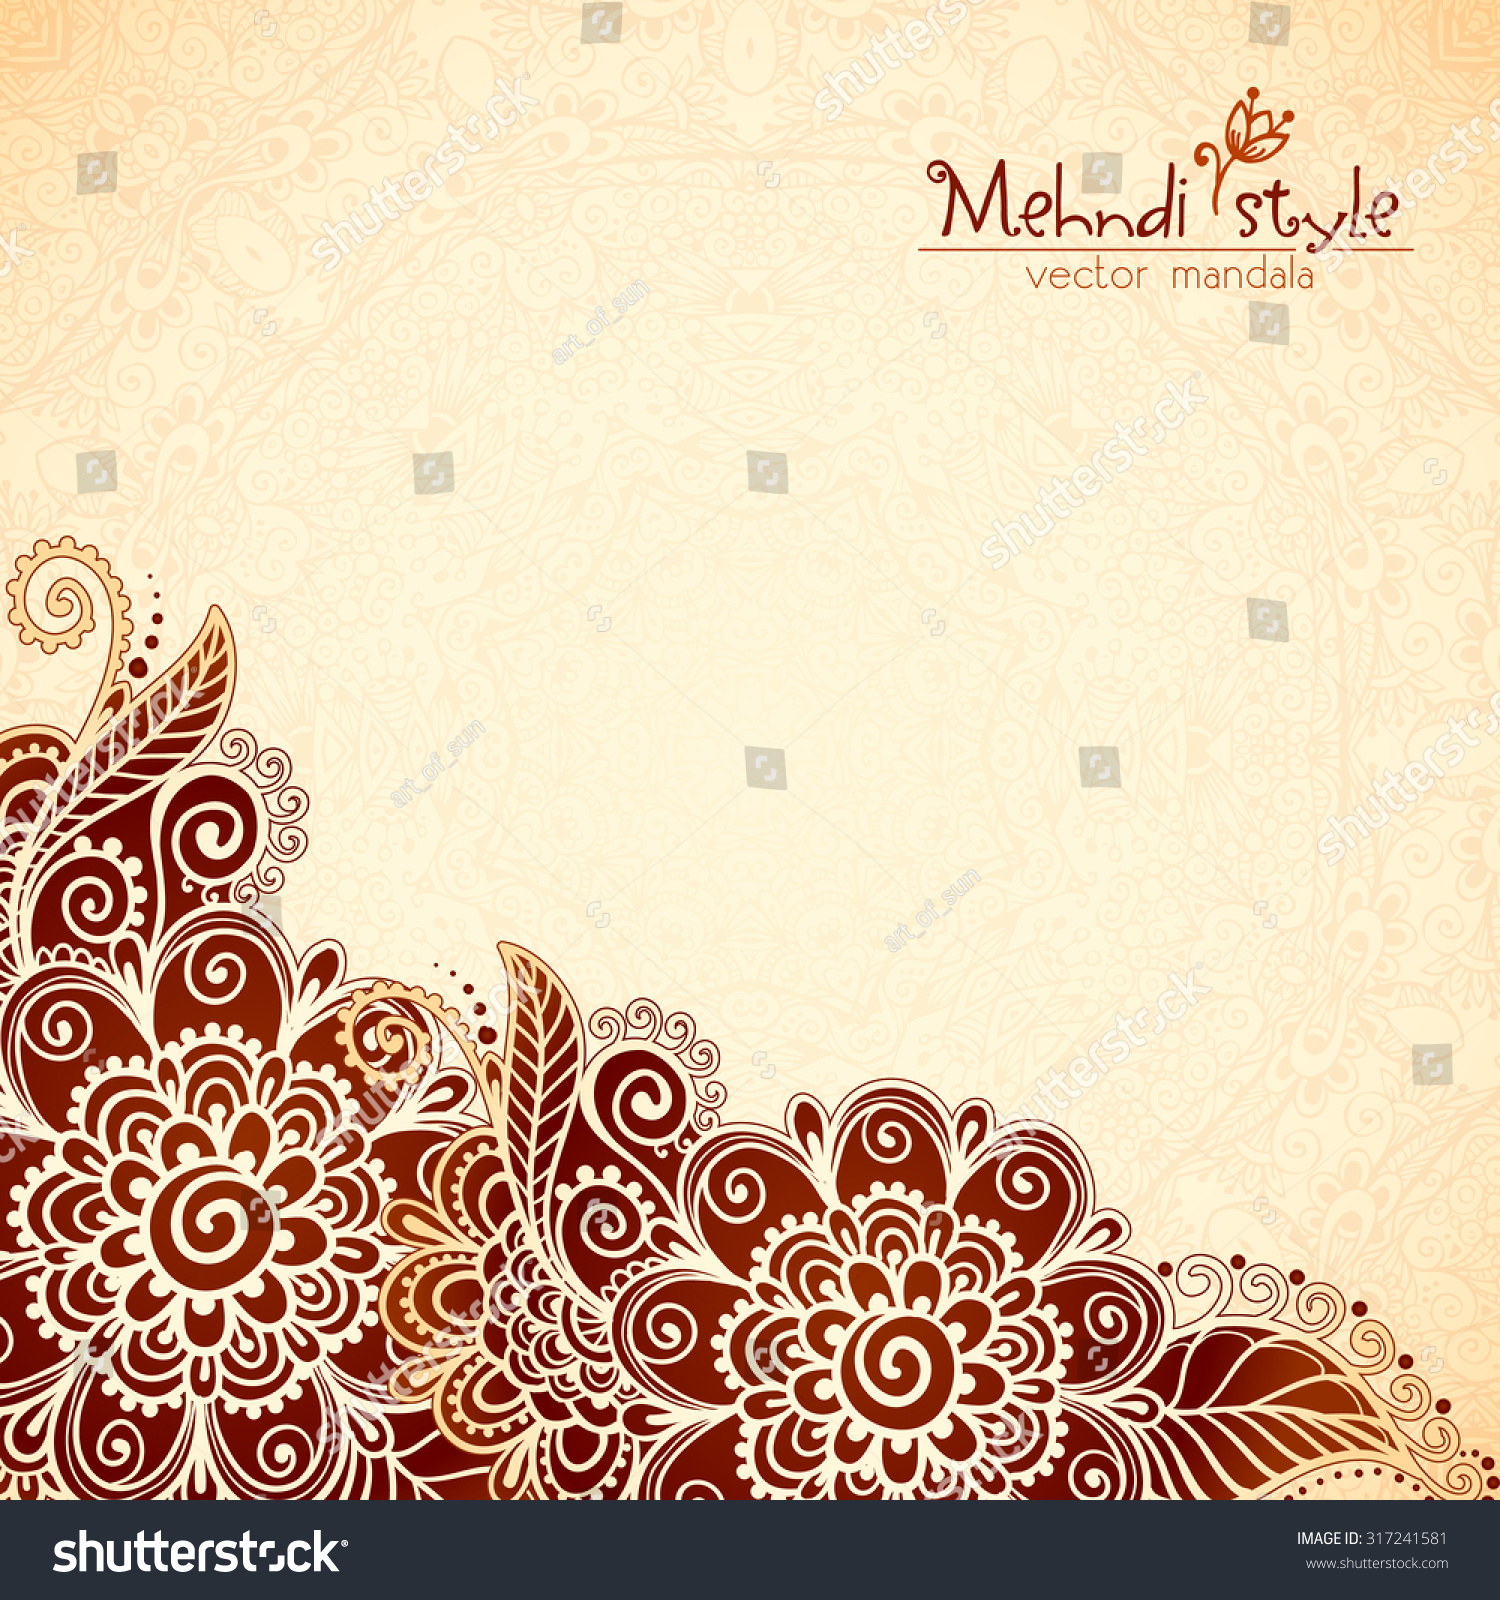 Ornate vintage vector background in mehndi style royalty free stock - Vector Floral Vintage Ethnic Background In Indian Mehndi Style